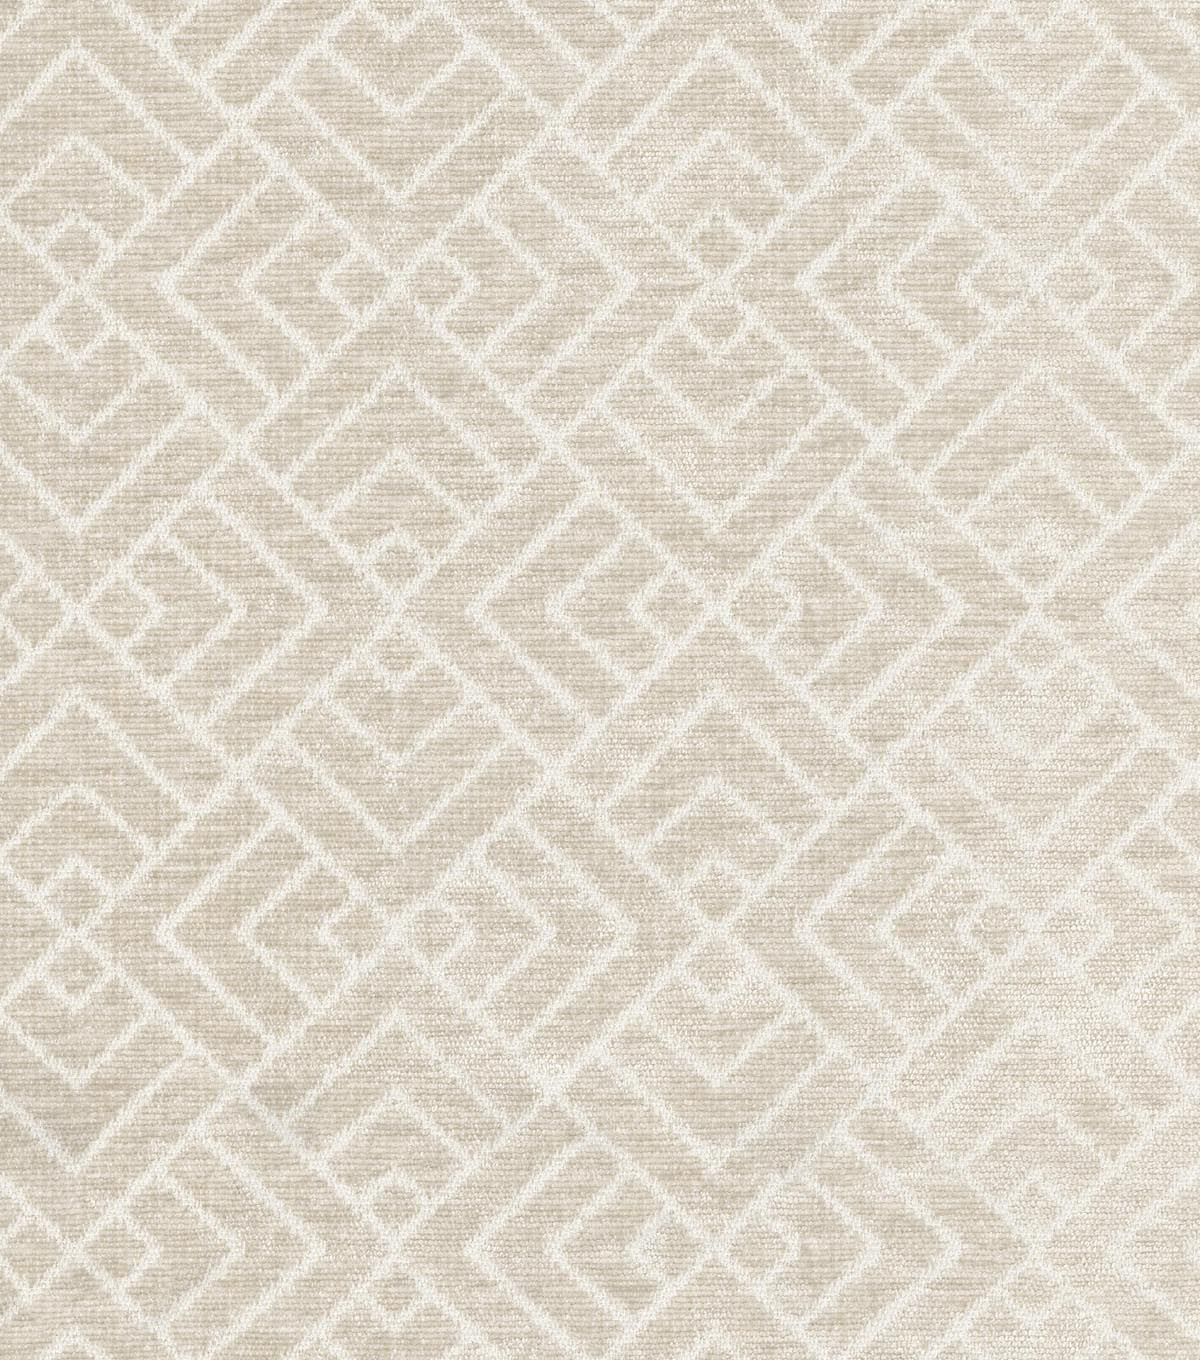 IMAN Home Upholstery Fabric 54\u0022-Tambal Lattice/Linen